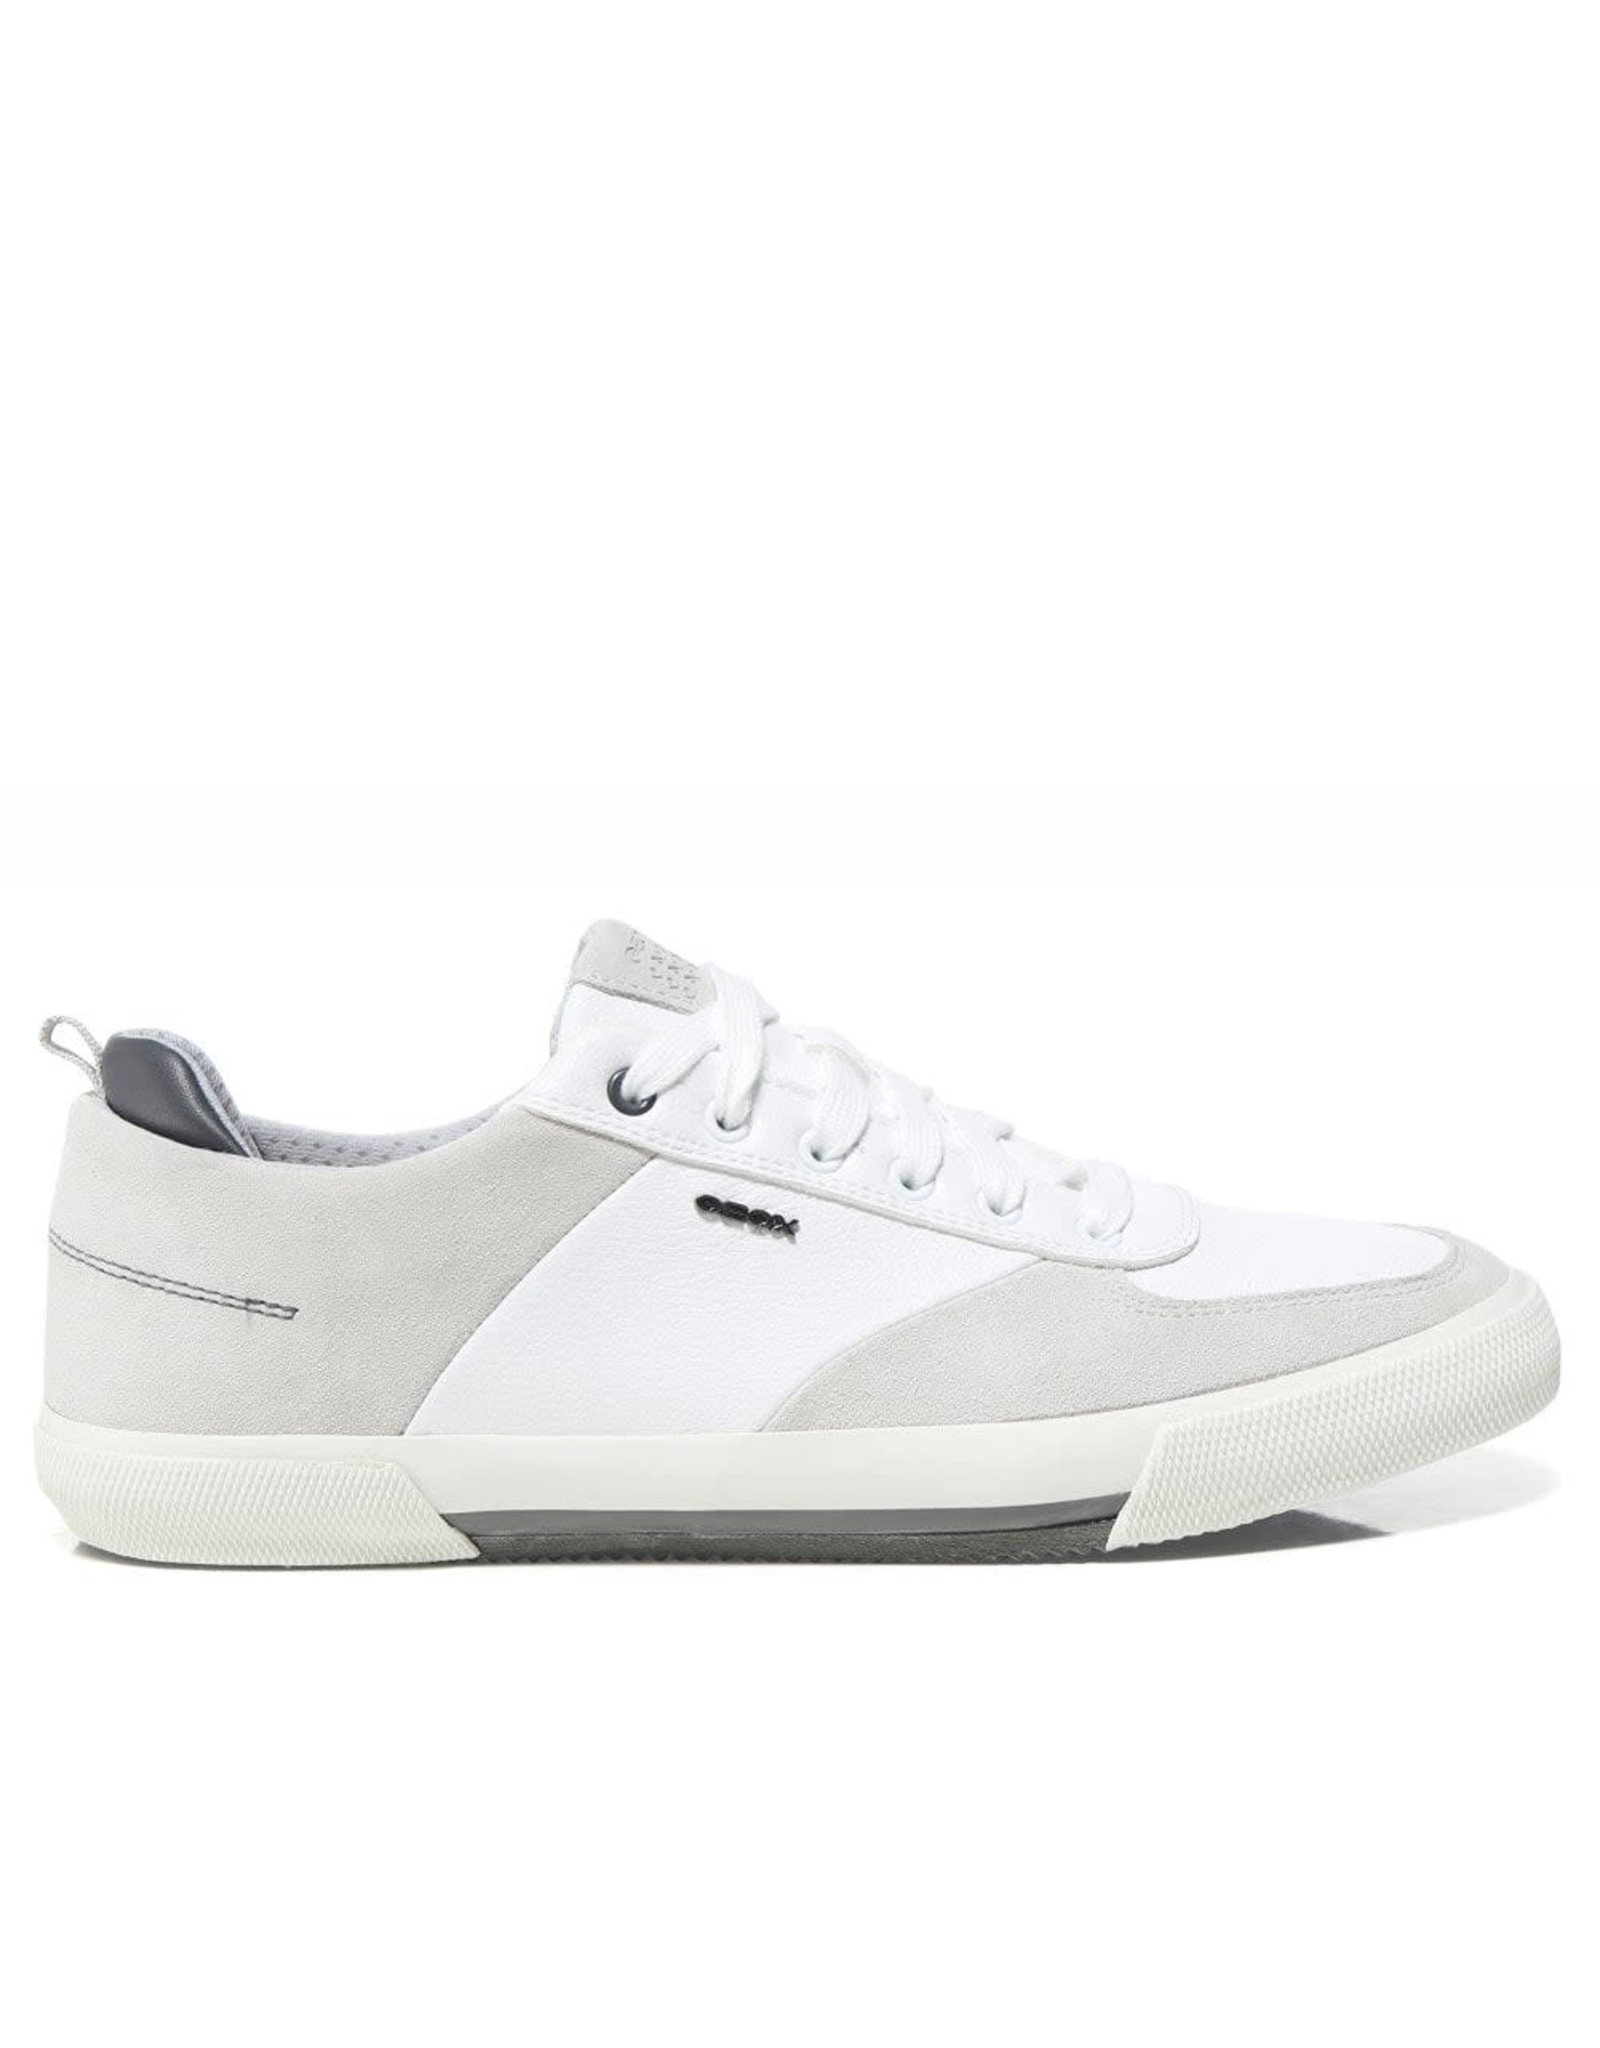 Geox Kaven Trainer White